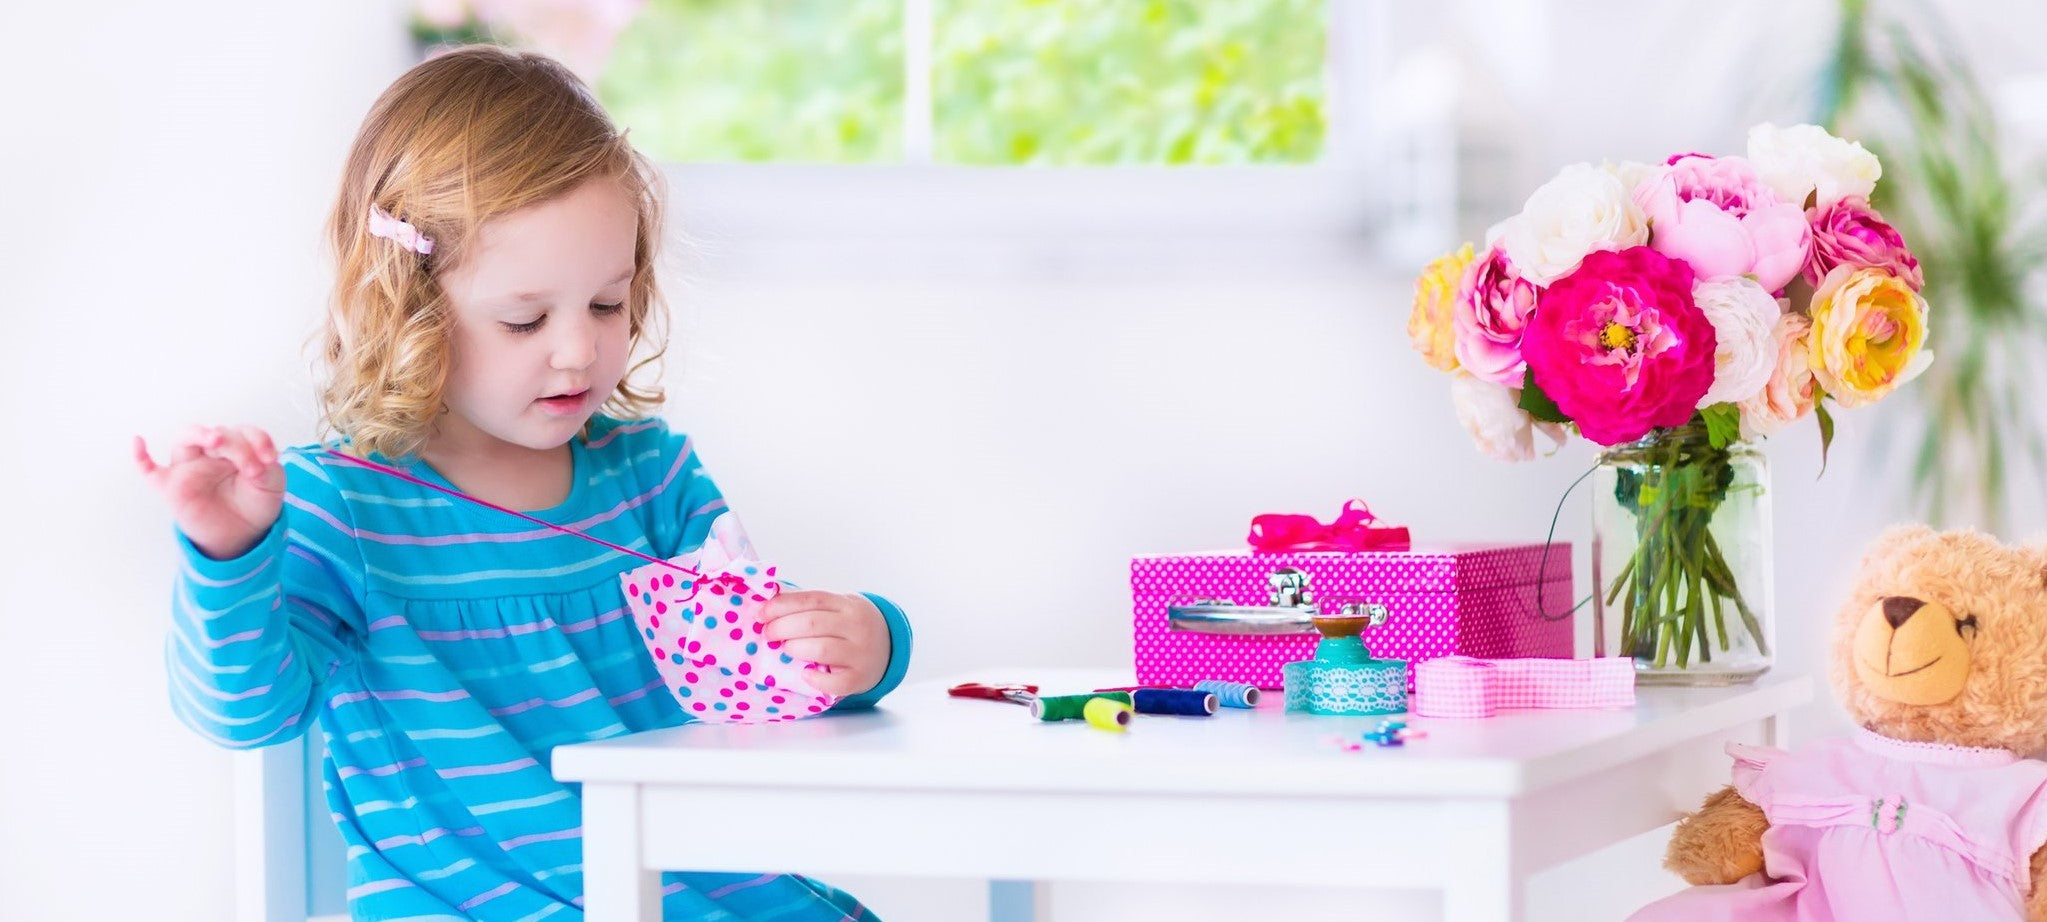 Little girl sewing and crafting